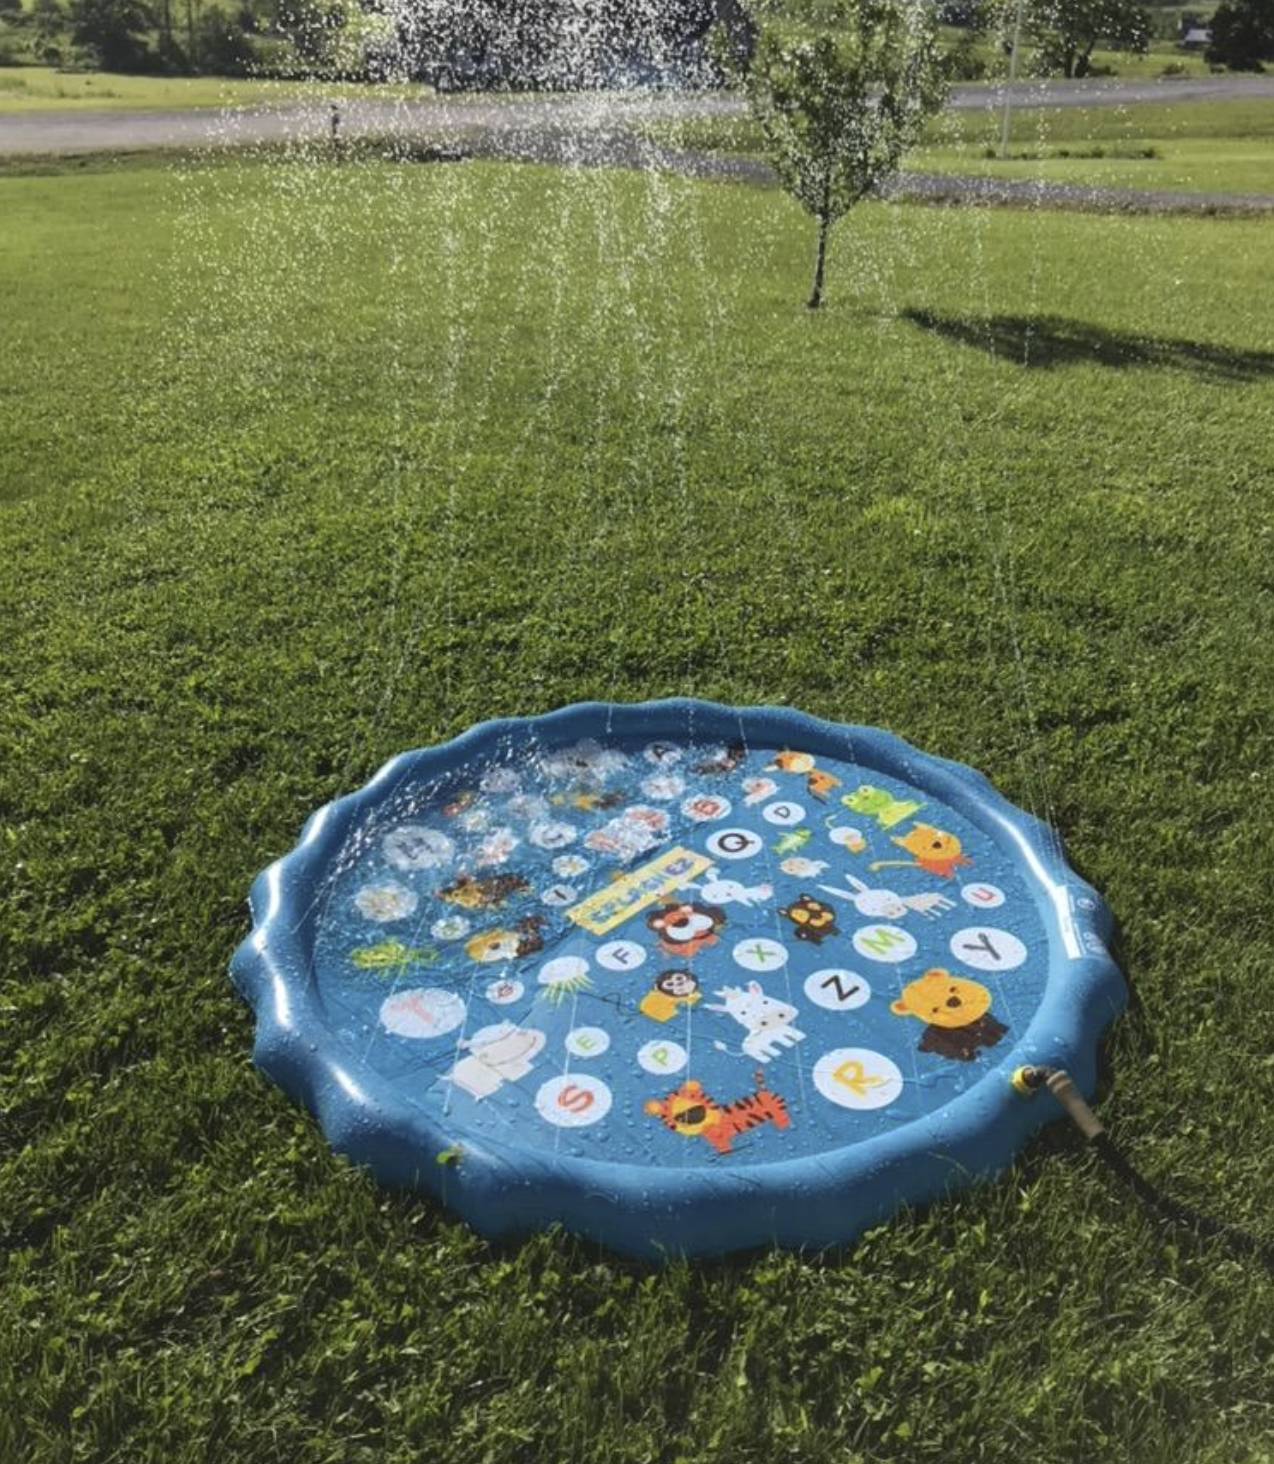 Reviewer pic of the small inflatable pool with water shooting up from the squirters all around the outside